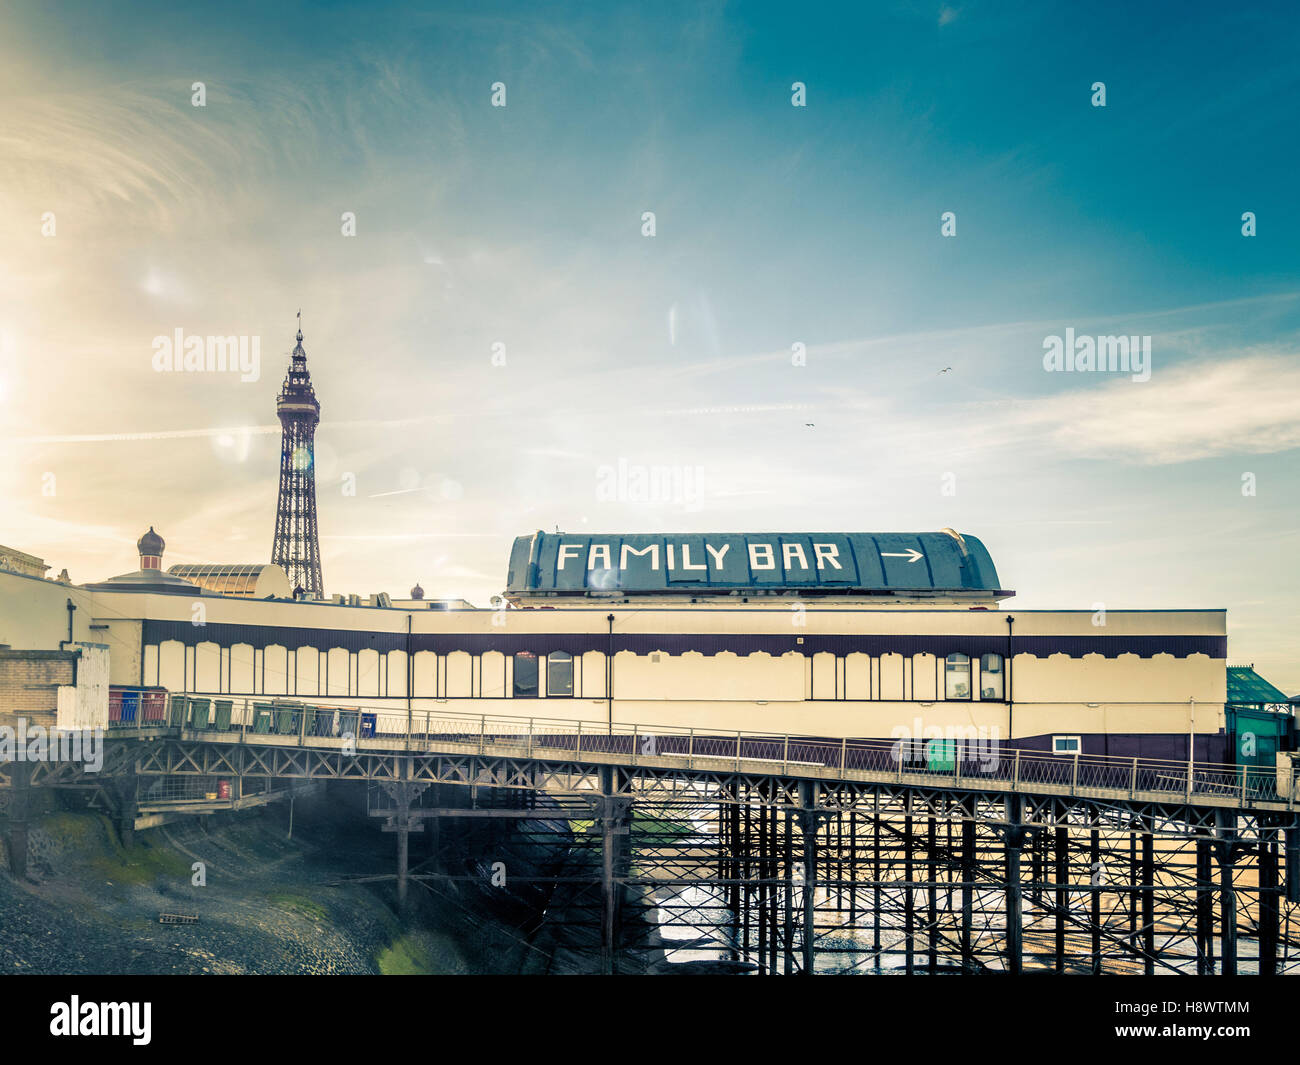 Family Bar sign on North Pier with Tower in distance, Blackpool, Lancashire, UK. Stock Photo